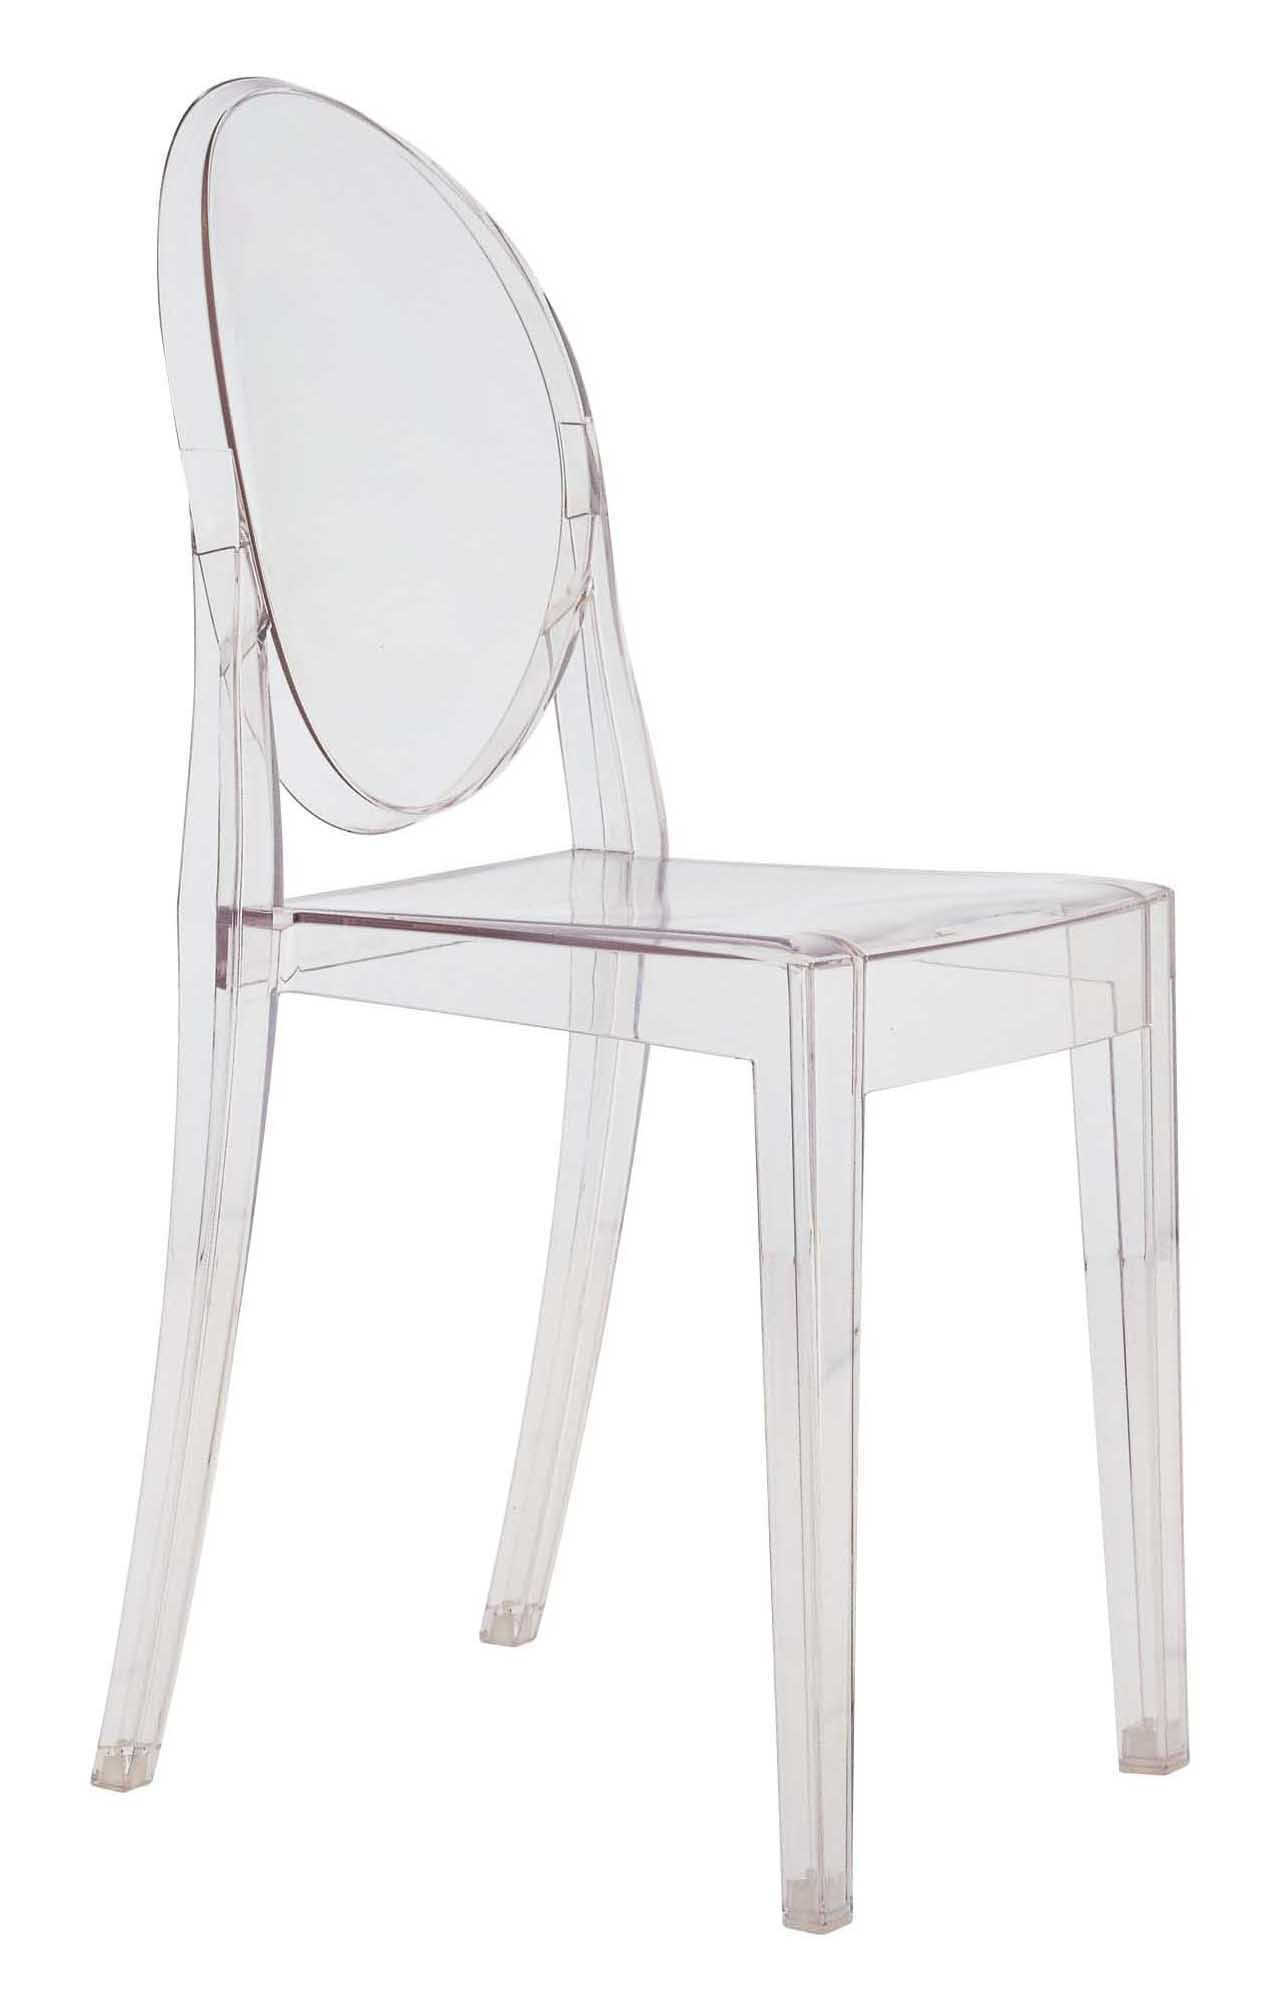 Chaises Polycarbonate Starck Chaise Empilable Victoria Ghost Transparente